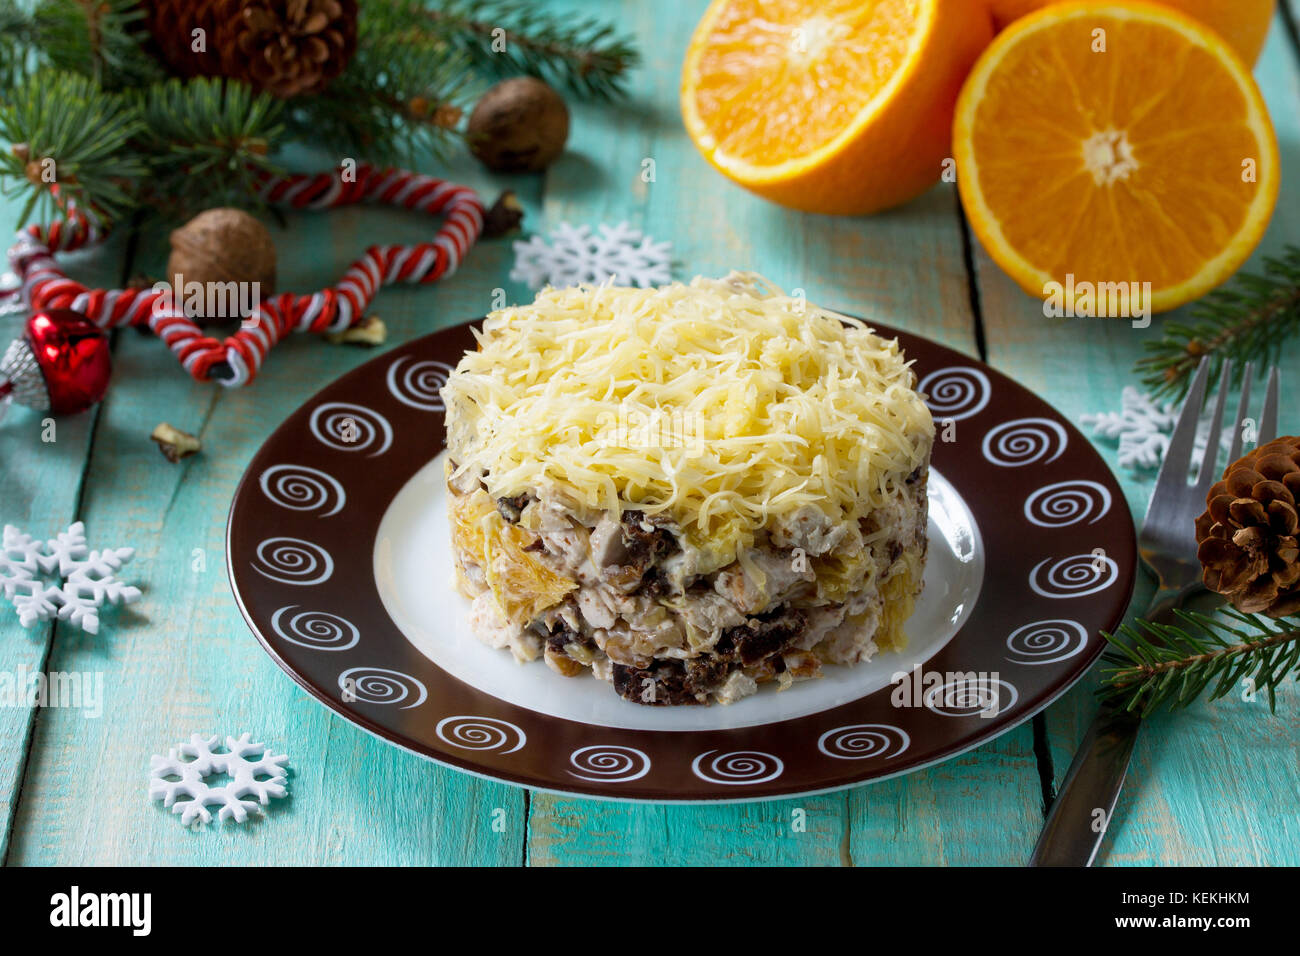 Homemade appetizer on a festive Christmas table. Salad with chicken, orange, prunes, cheese and walnuts. - Stock Image